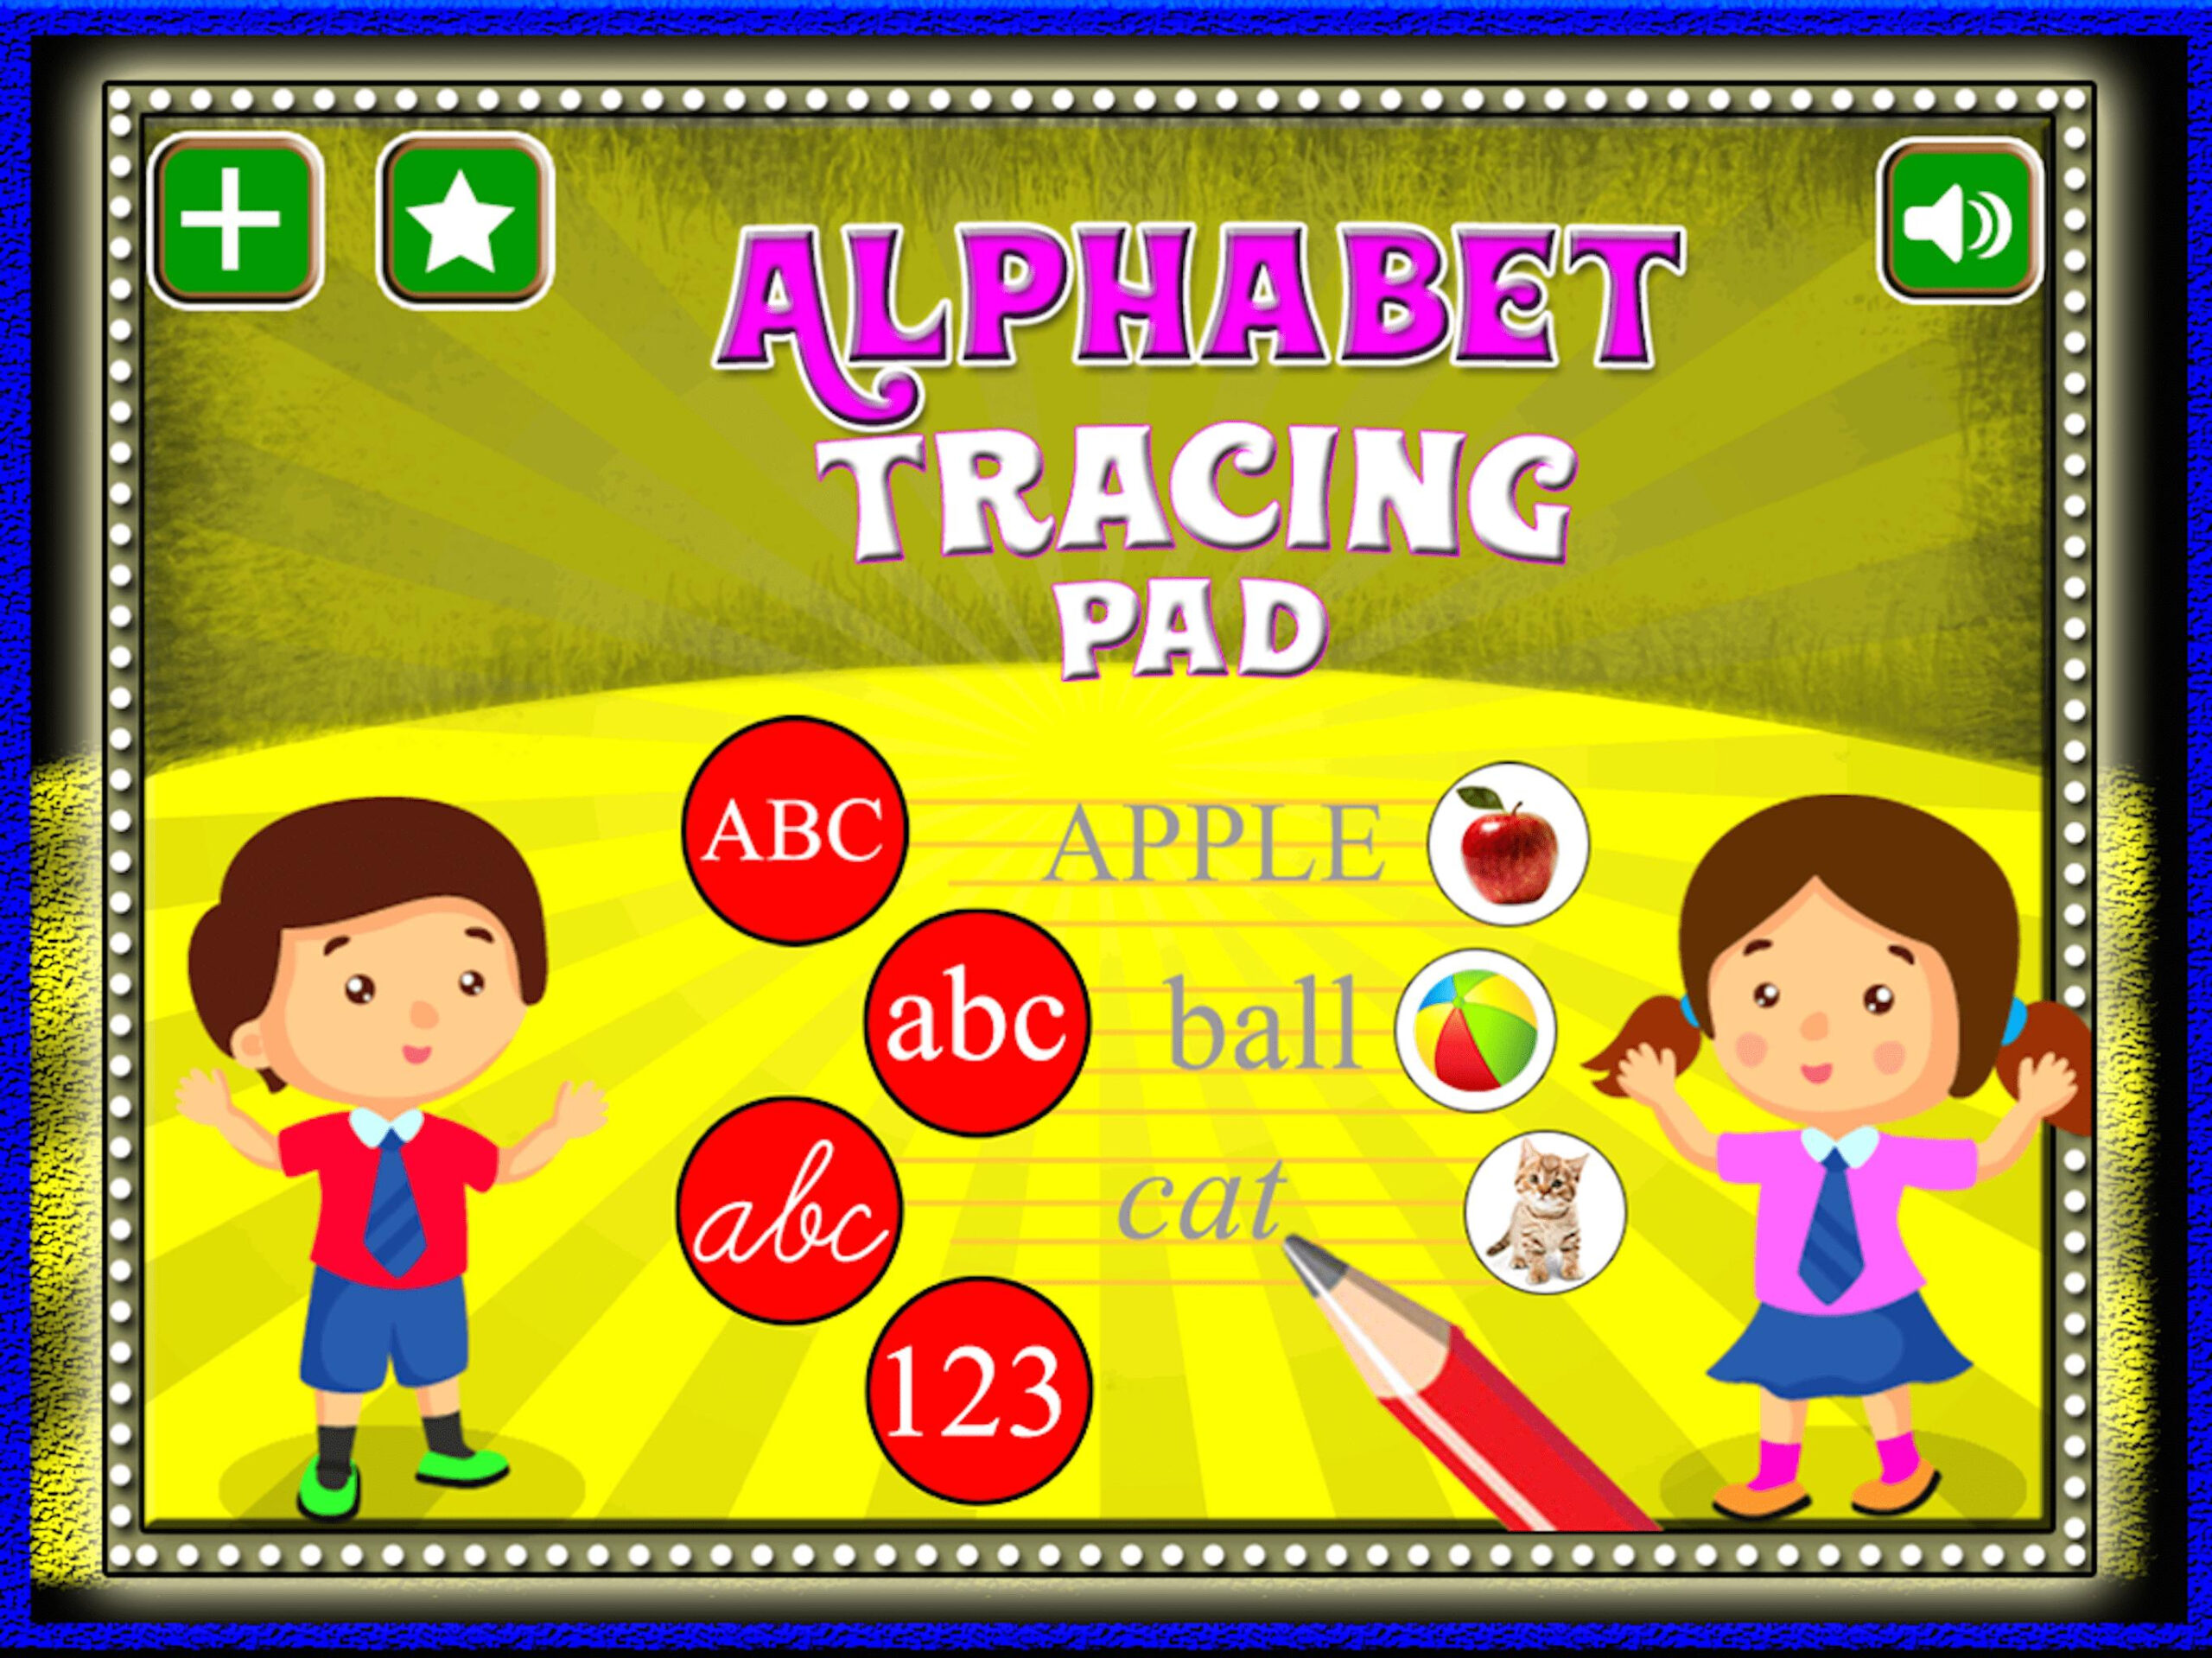 Abc Alphabet Tracing Game For Android - Apk Download with Alphabet Tracing Game